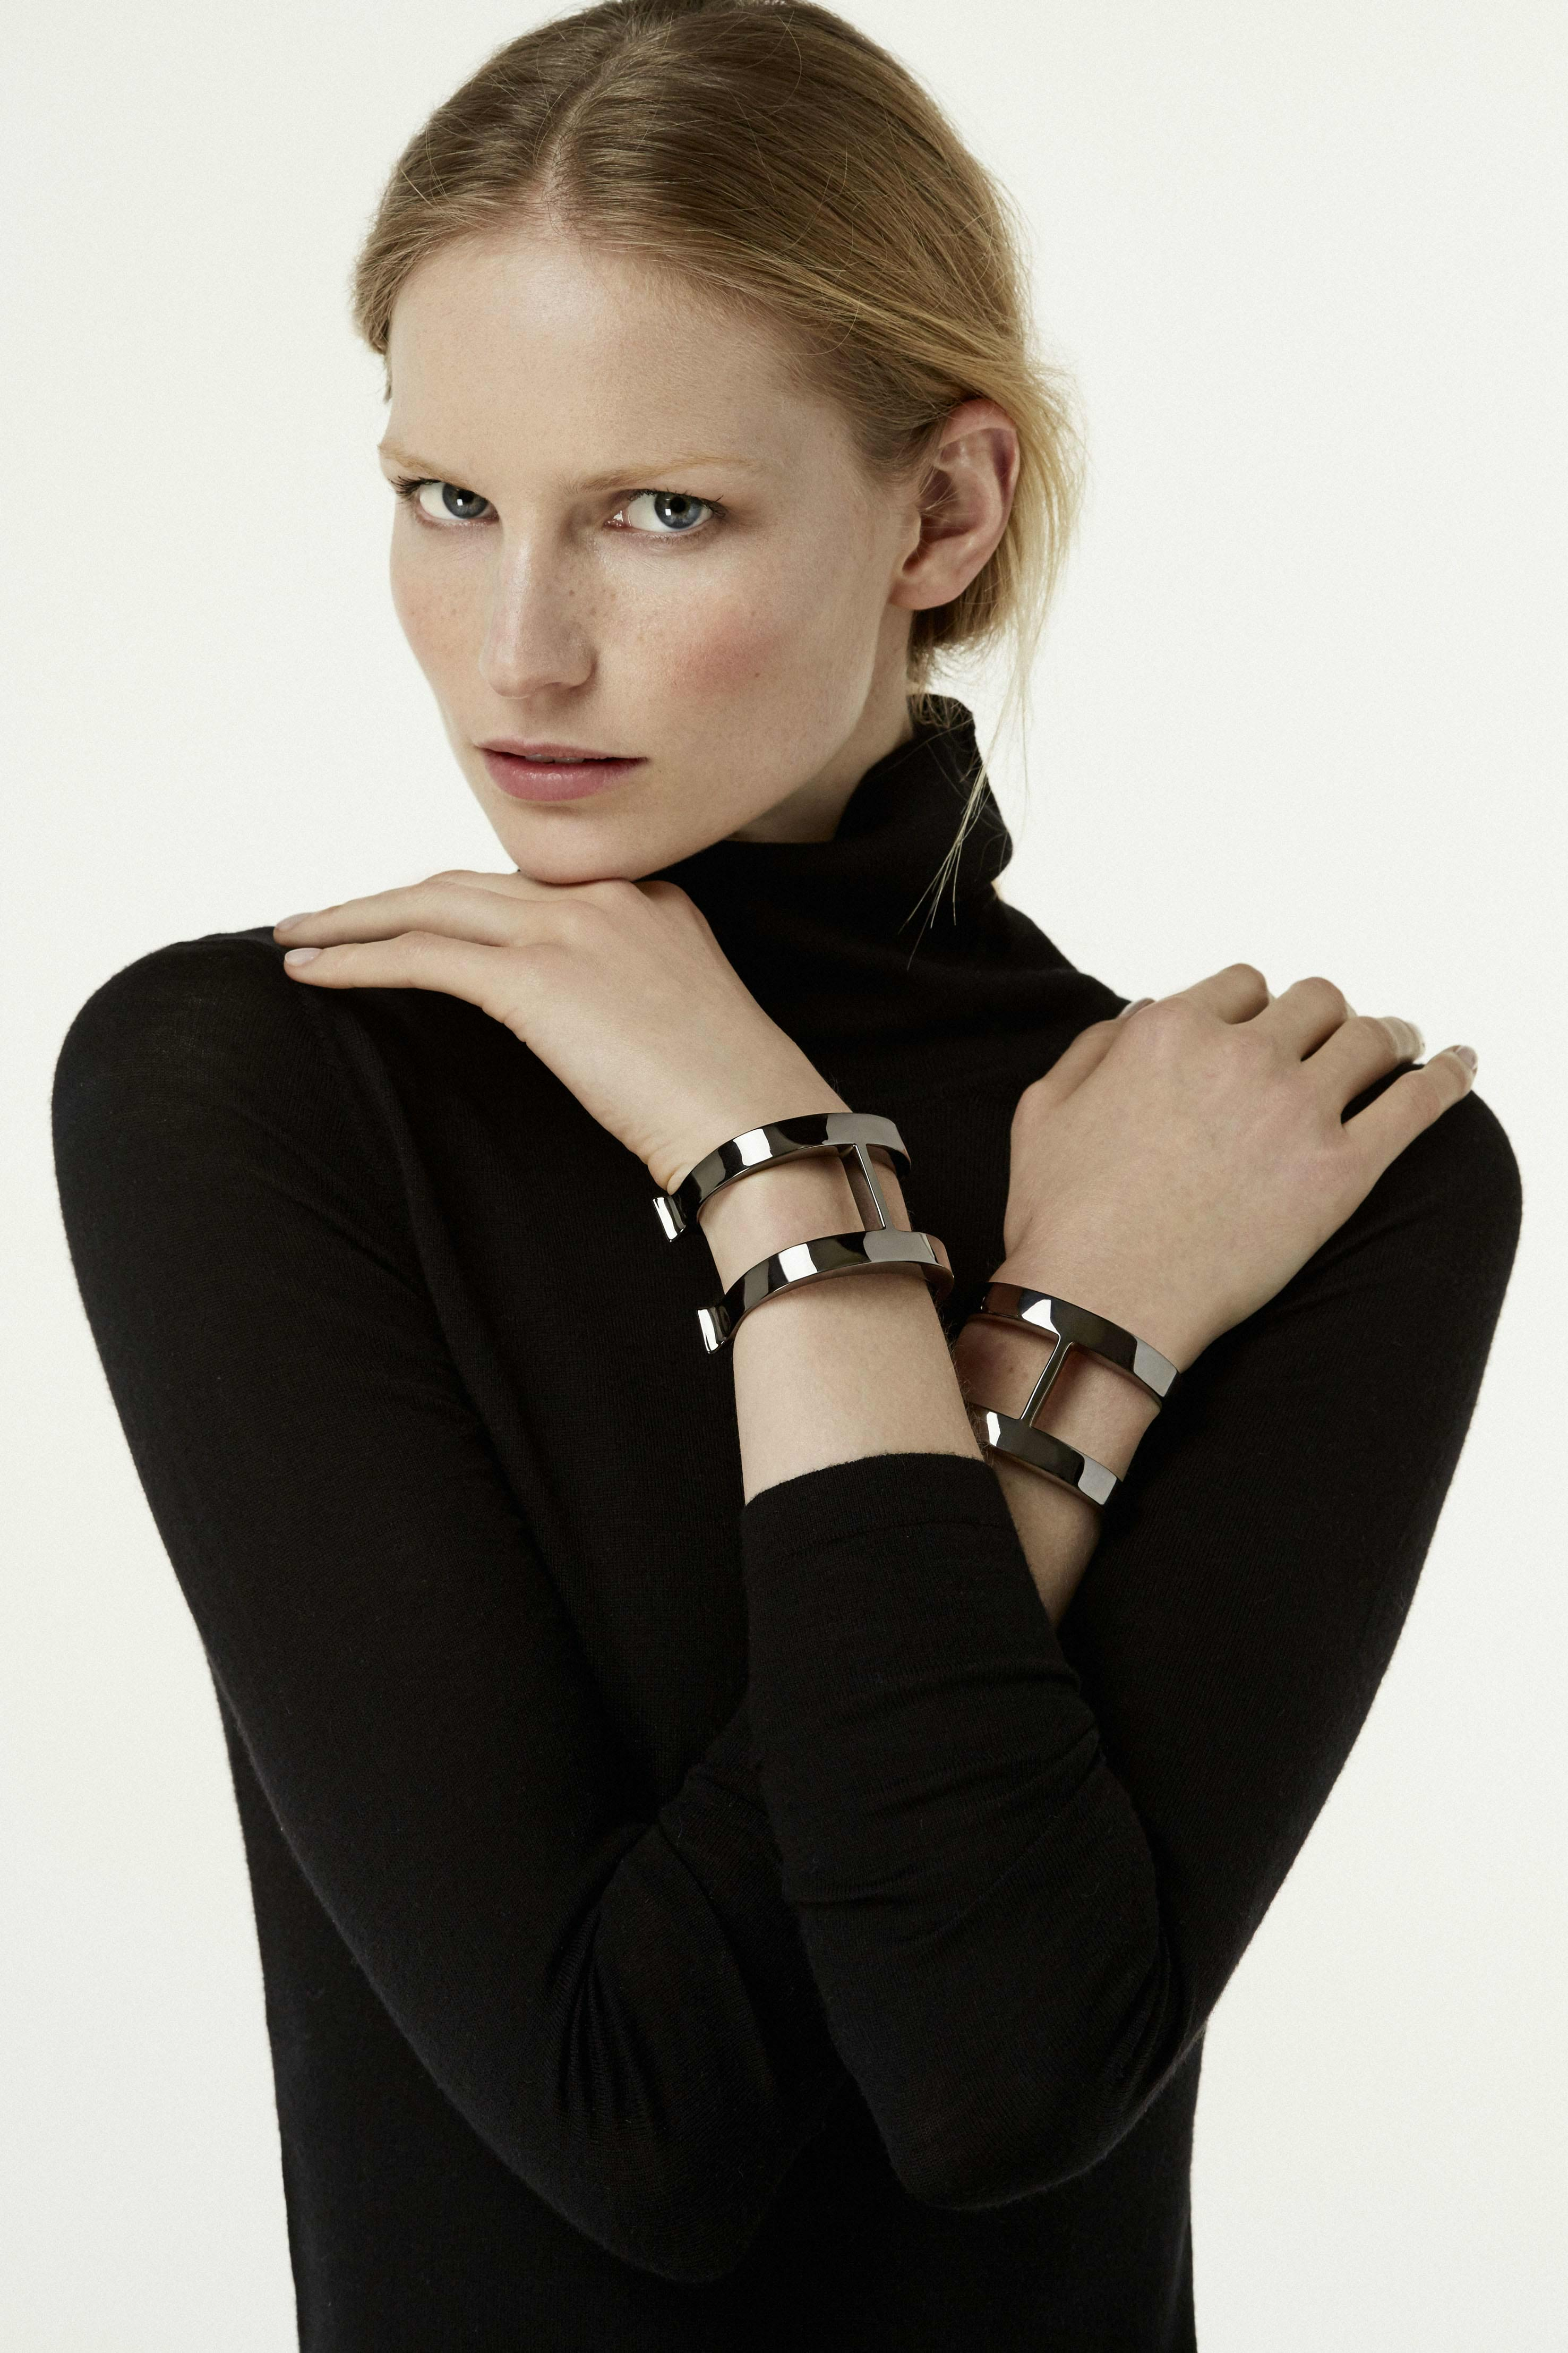 CH_Insignia-collection_editorial_07